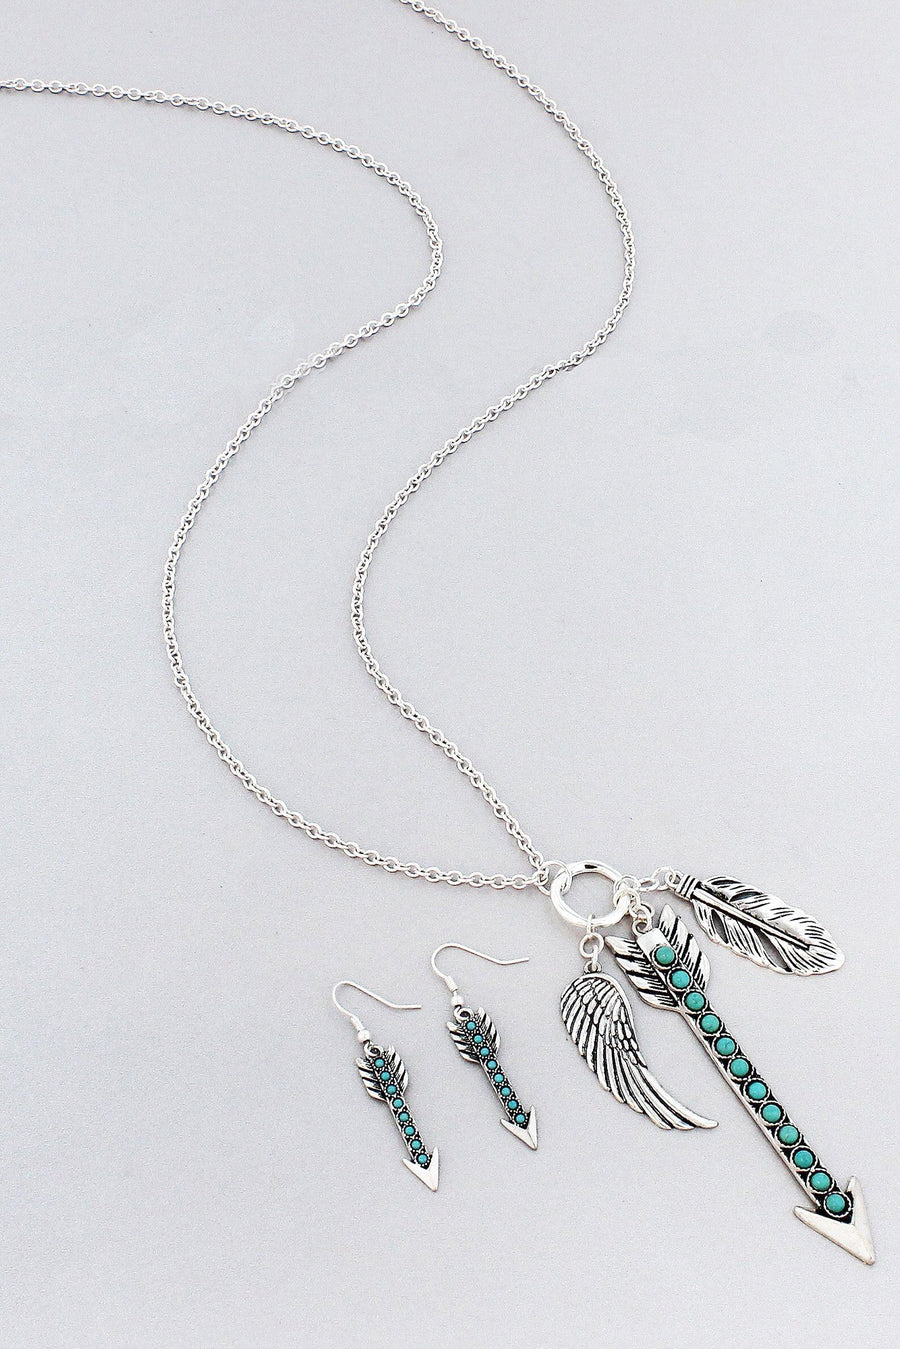 Worn Silvertone Turquoise Beaded Arrow Cluster Pendant Necklace and Earring Set